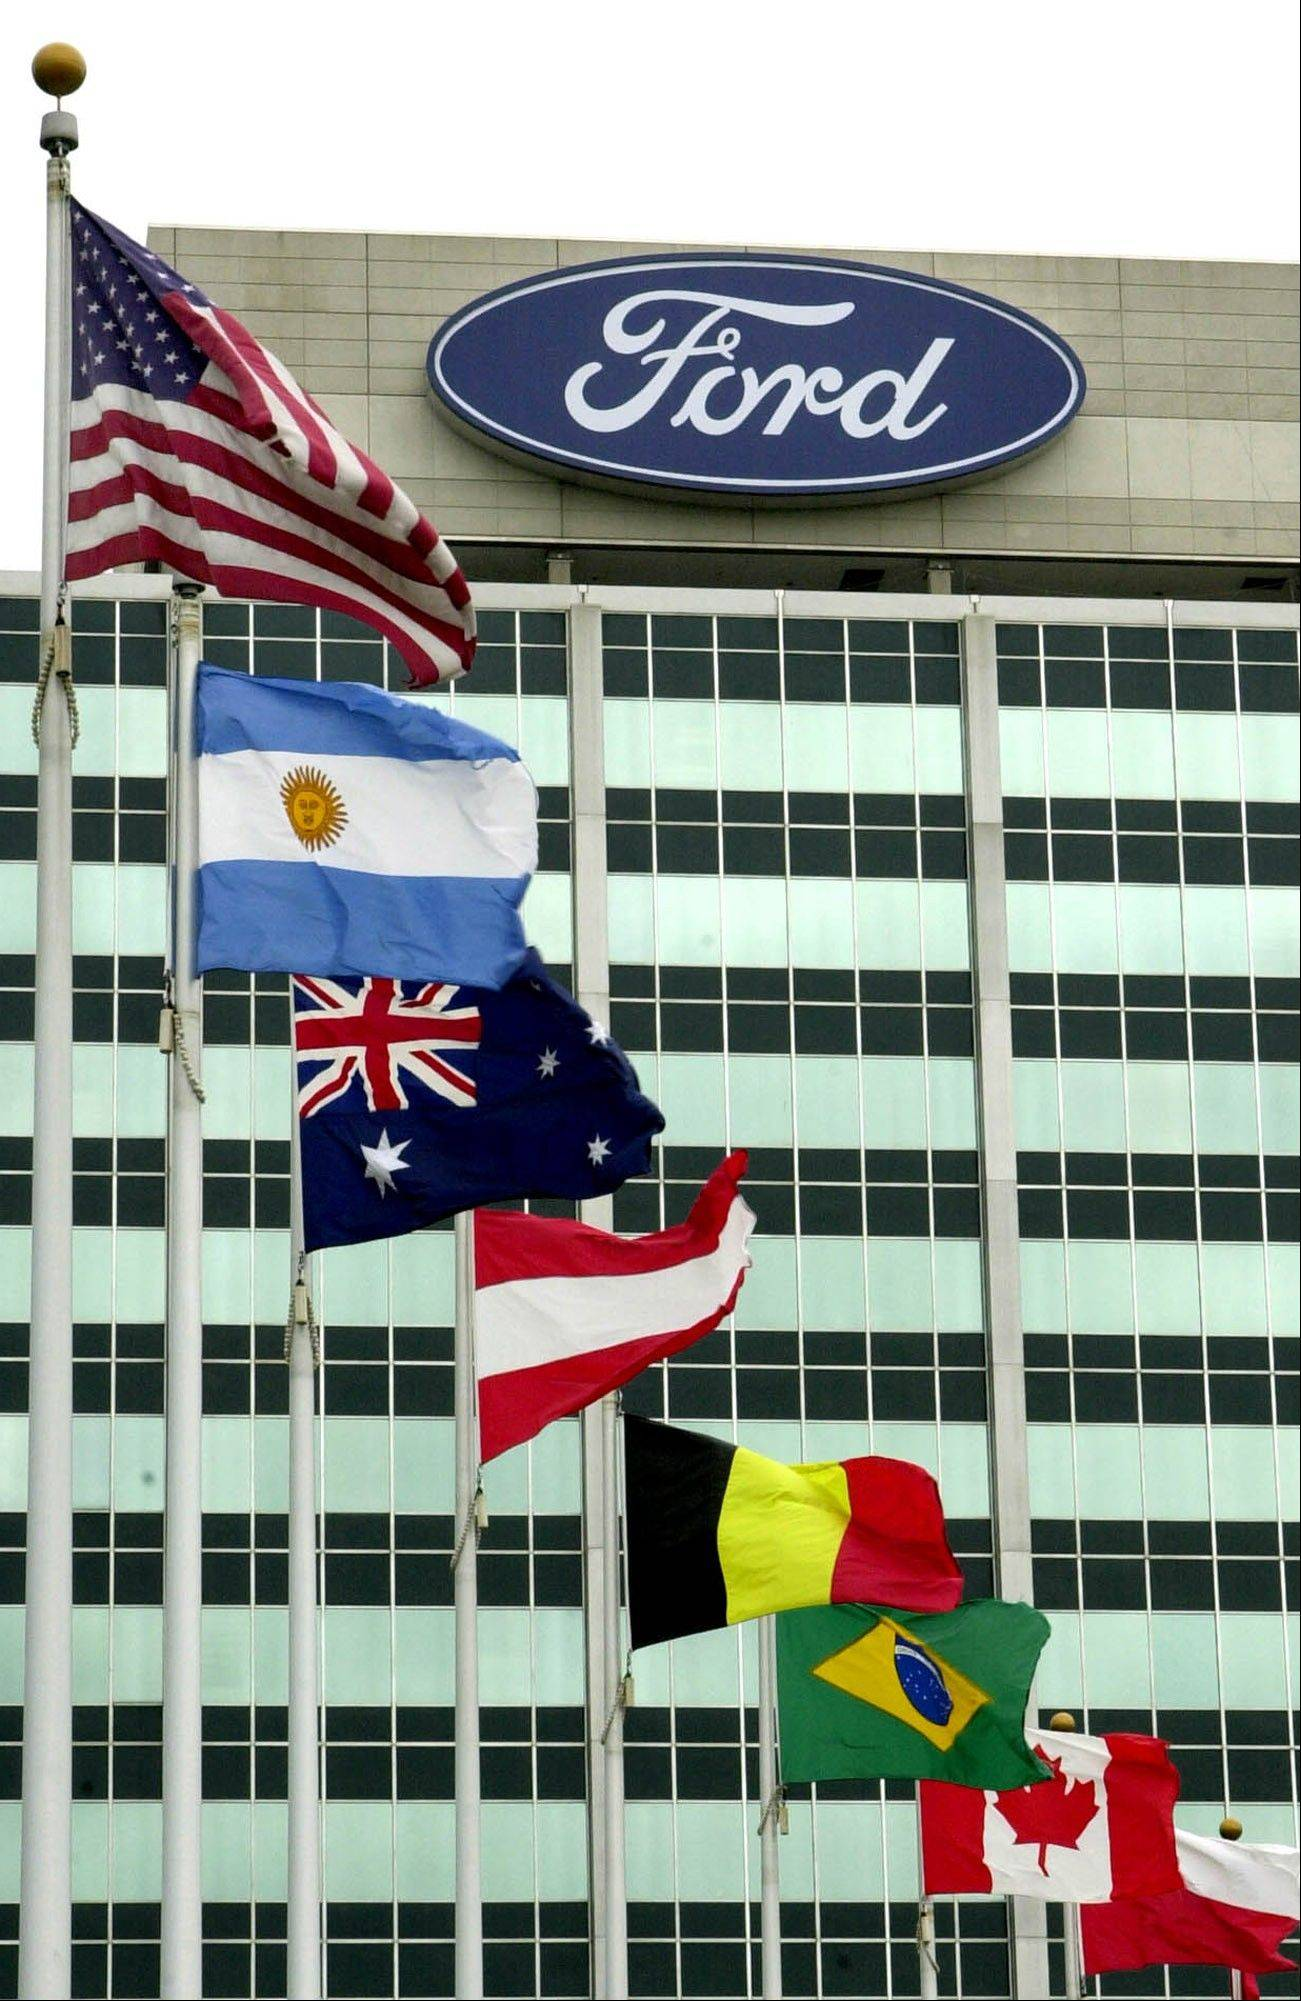 Ford earned $1.6 billion in the fourth quarter as sales rose in every region outside Europe.